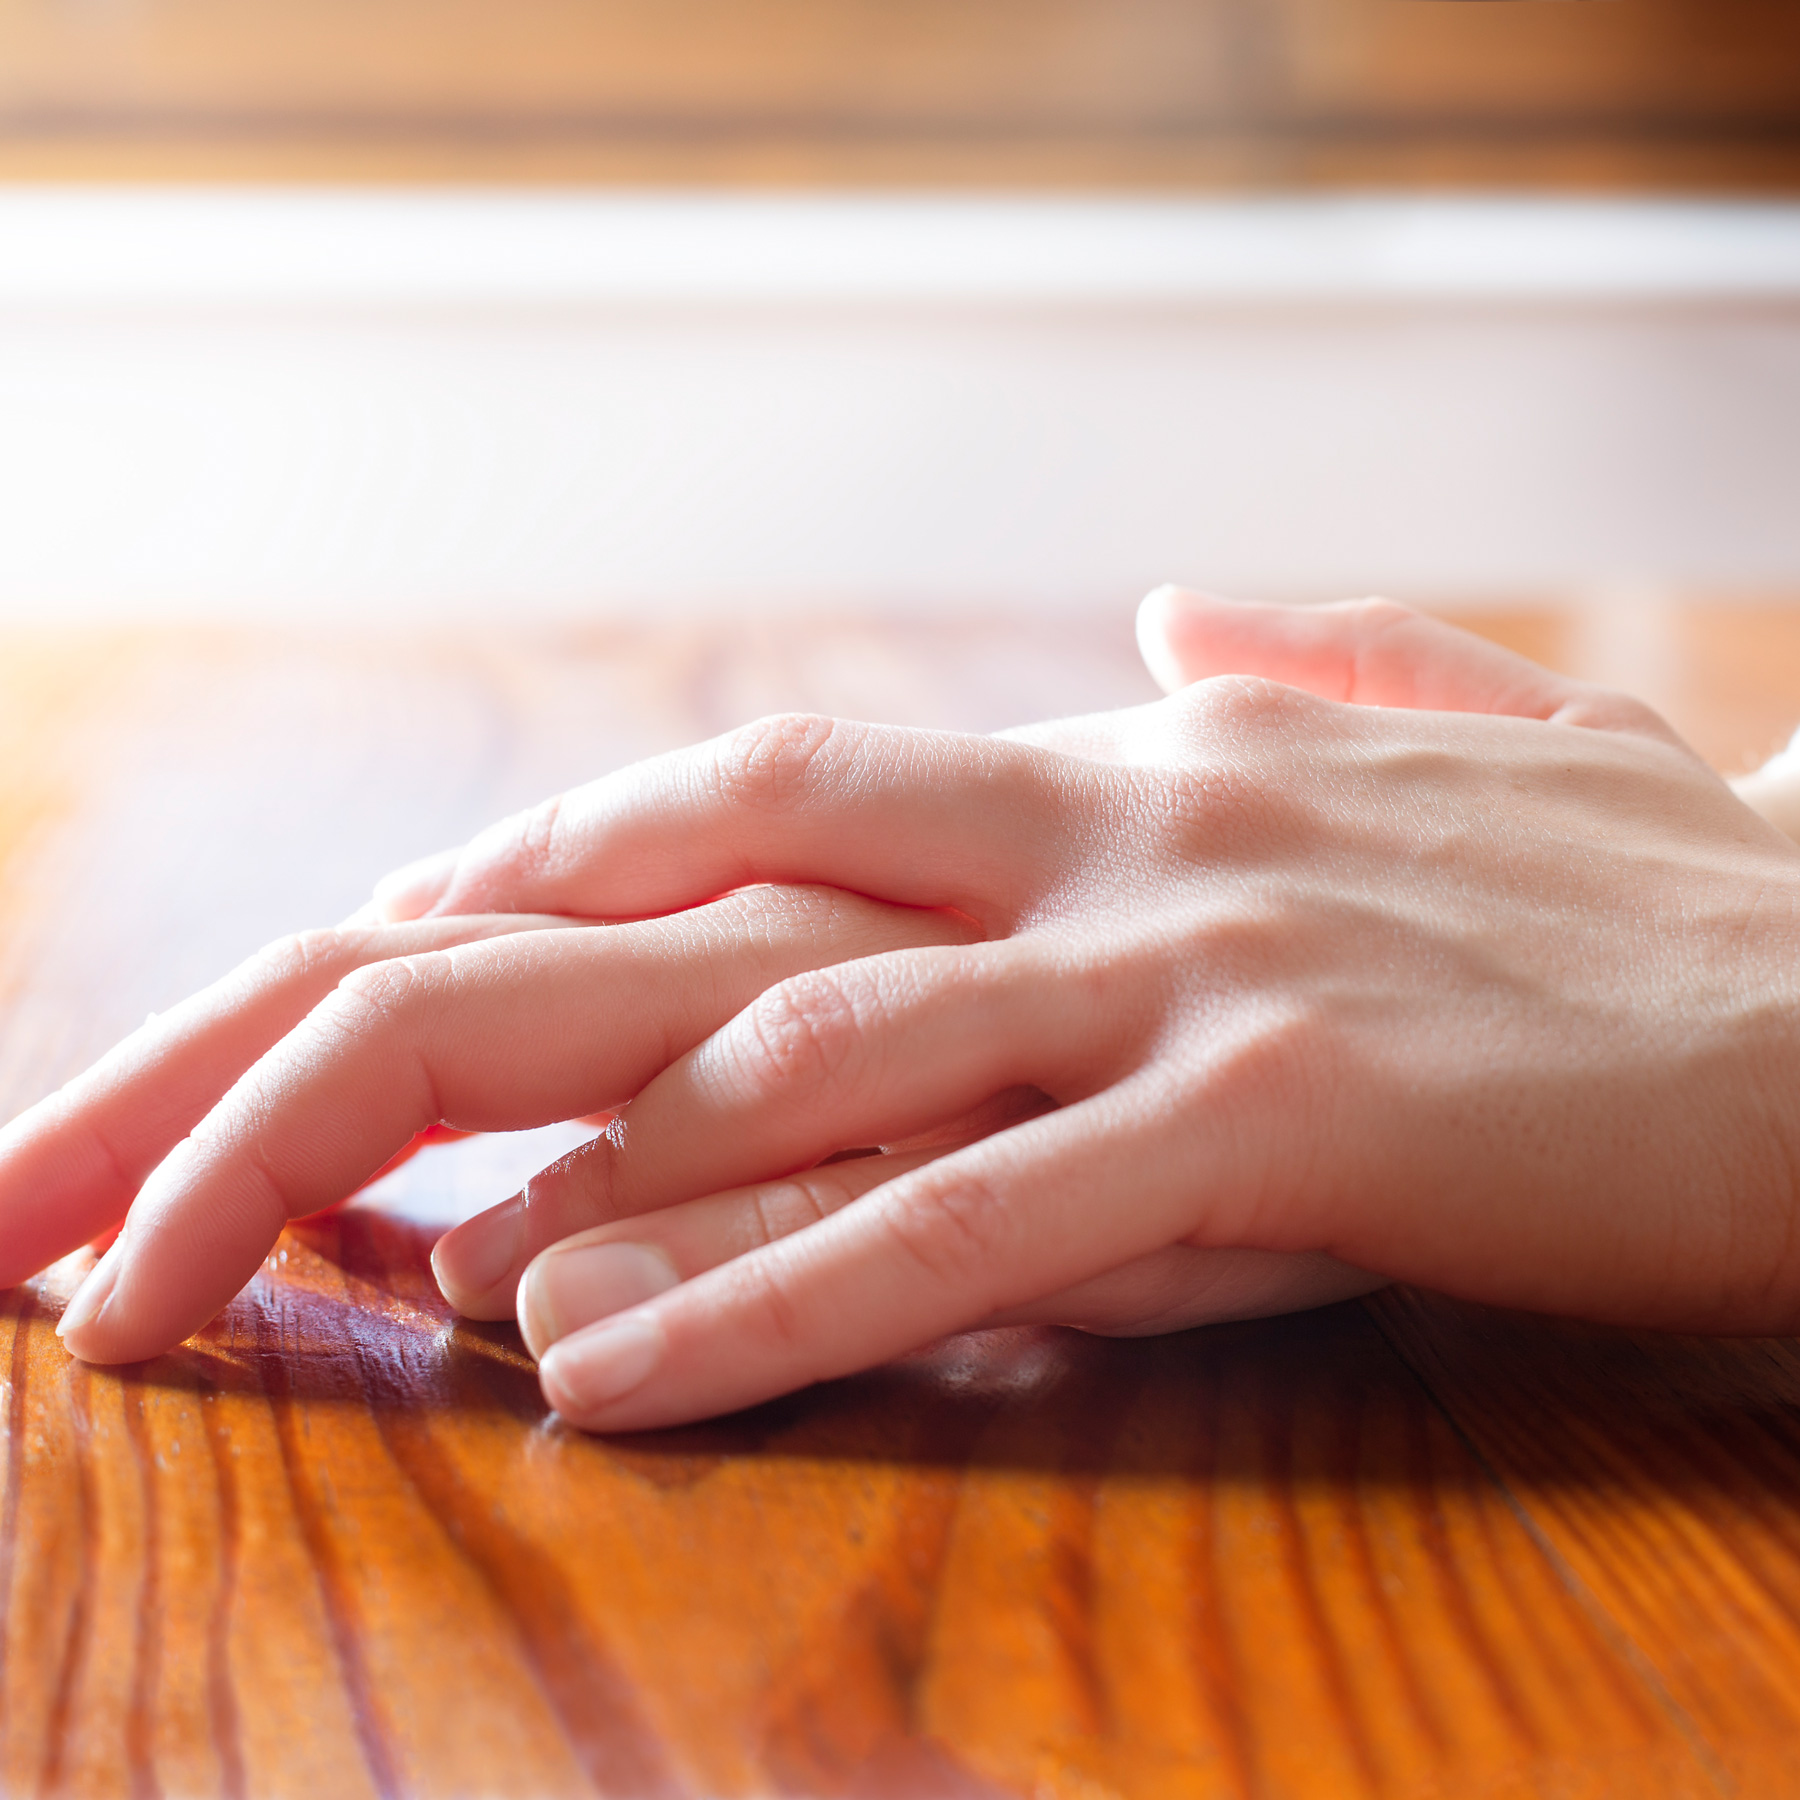 How to break bad habits (fidgeting): Woman folding her hands on the table, close up shot